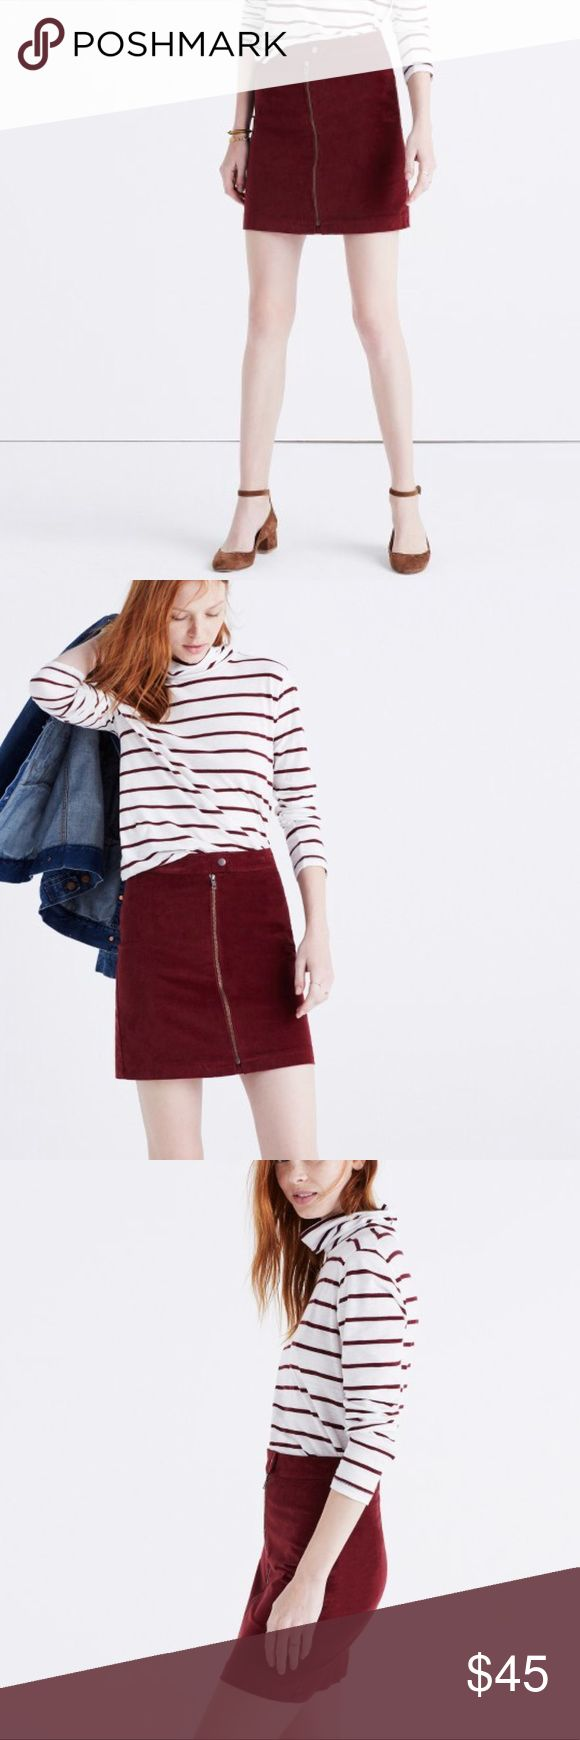 """Madewell Studio Zip Skirt in Velvet Burgundy Studio Zip Skirt in Velvet from Madewell in a size 00. Worn just a few times and in fantastic condition.  Totally on trend with a great pair of boots and a chunky sweater. 17 3/4"""" Long Madewell Skirts Mini"""